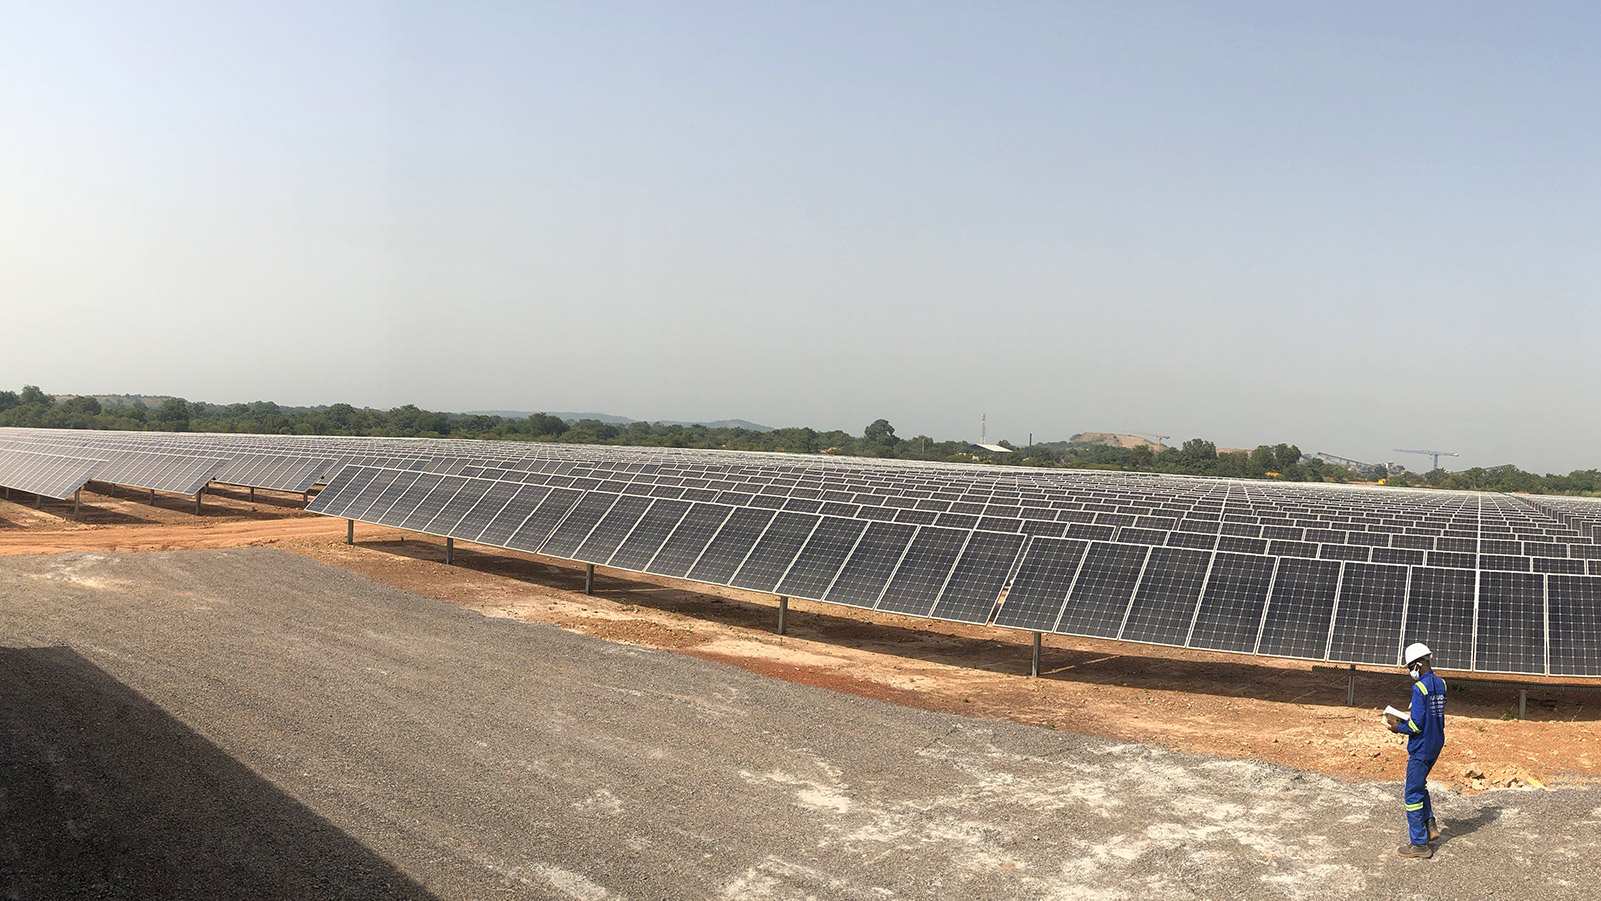 The recently contructed solar power plant at the Loulo gold mine in Mali produces 20MW of power.